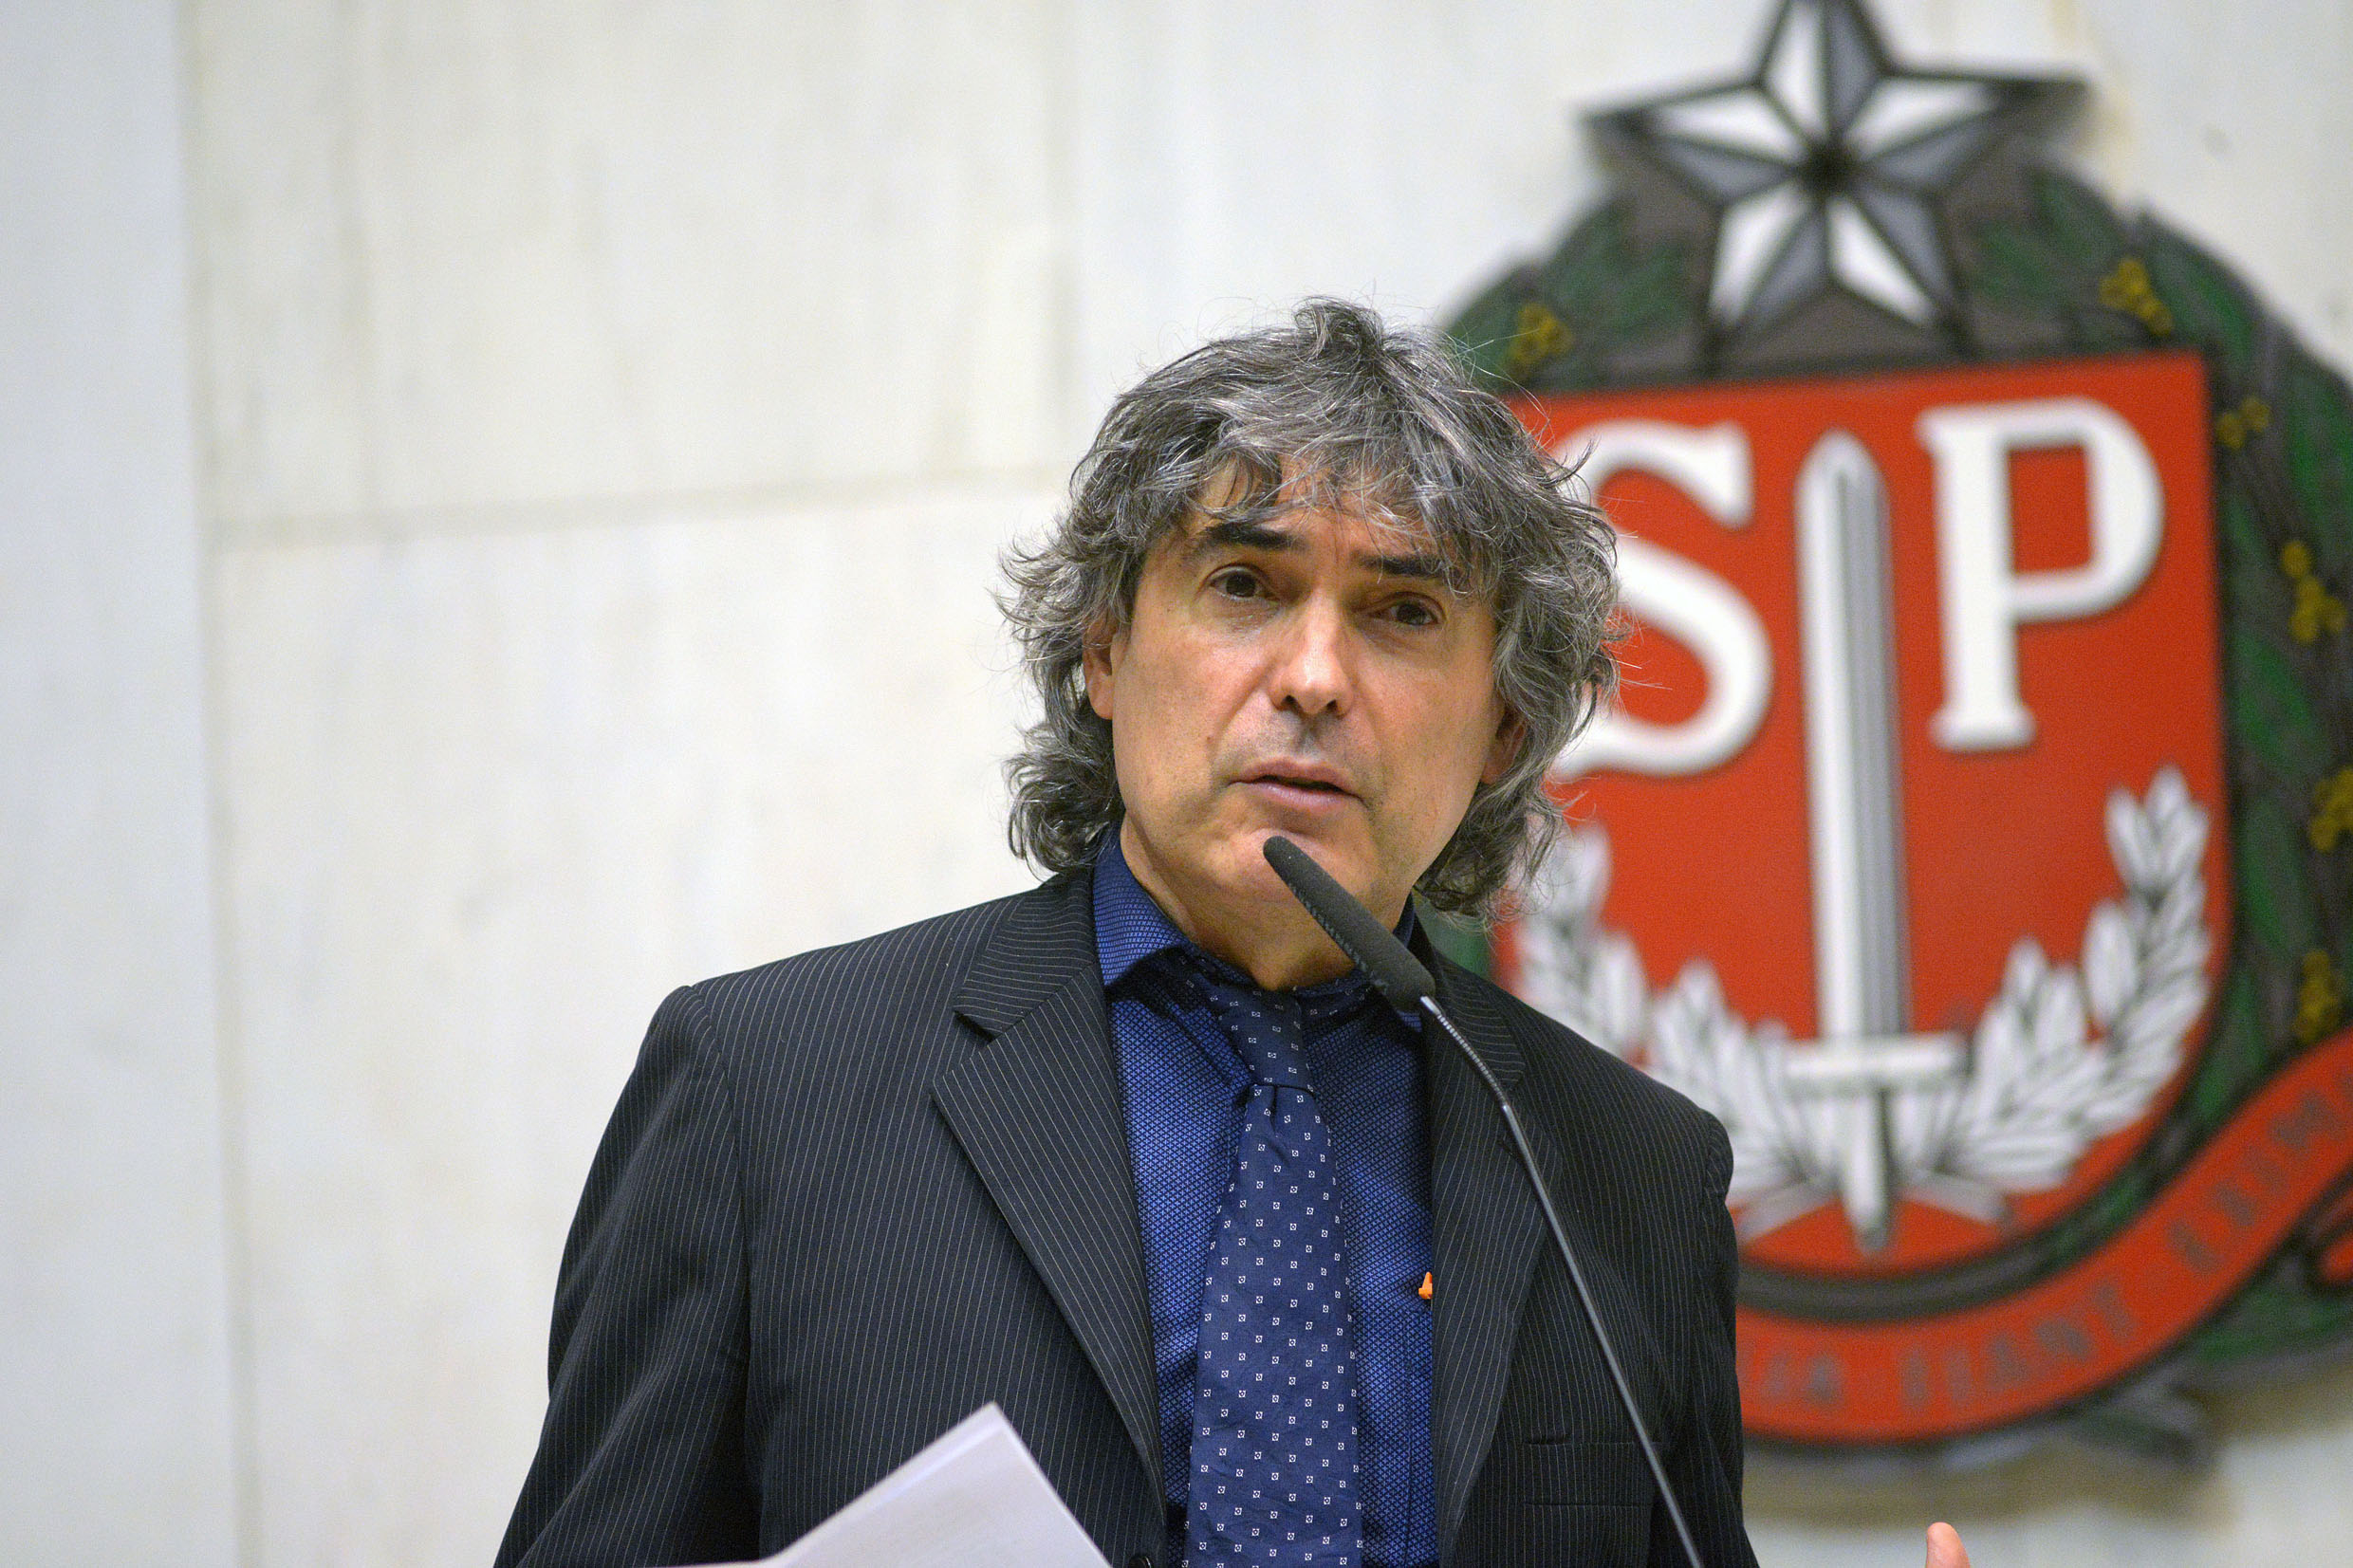 Carlos Giannazi<a style='float:right' href='https://www3.al.sp.gov.br/repositorio/noticia/N-09-2019/fg239717.jpg' target=_blank><img src='/_img/material-file-download-white.png' width='14px' alt='Clique para baixar a imagem'></a>